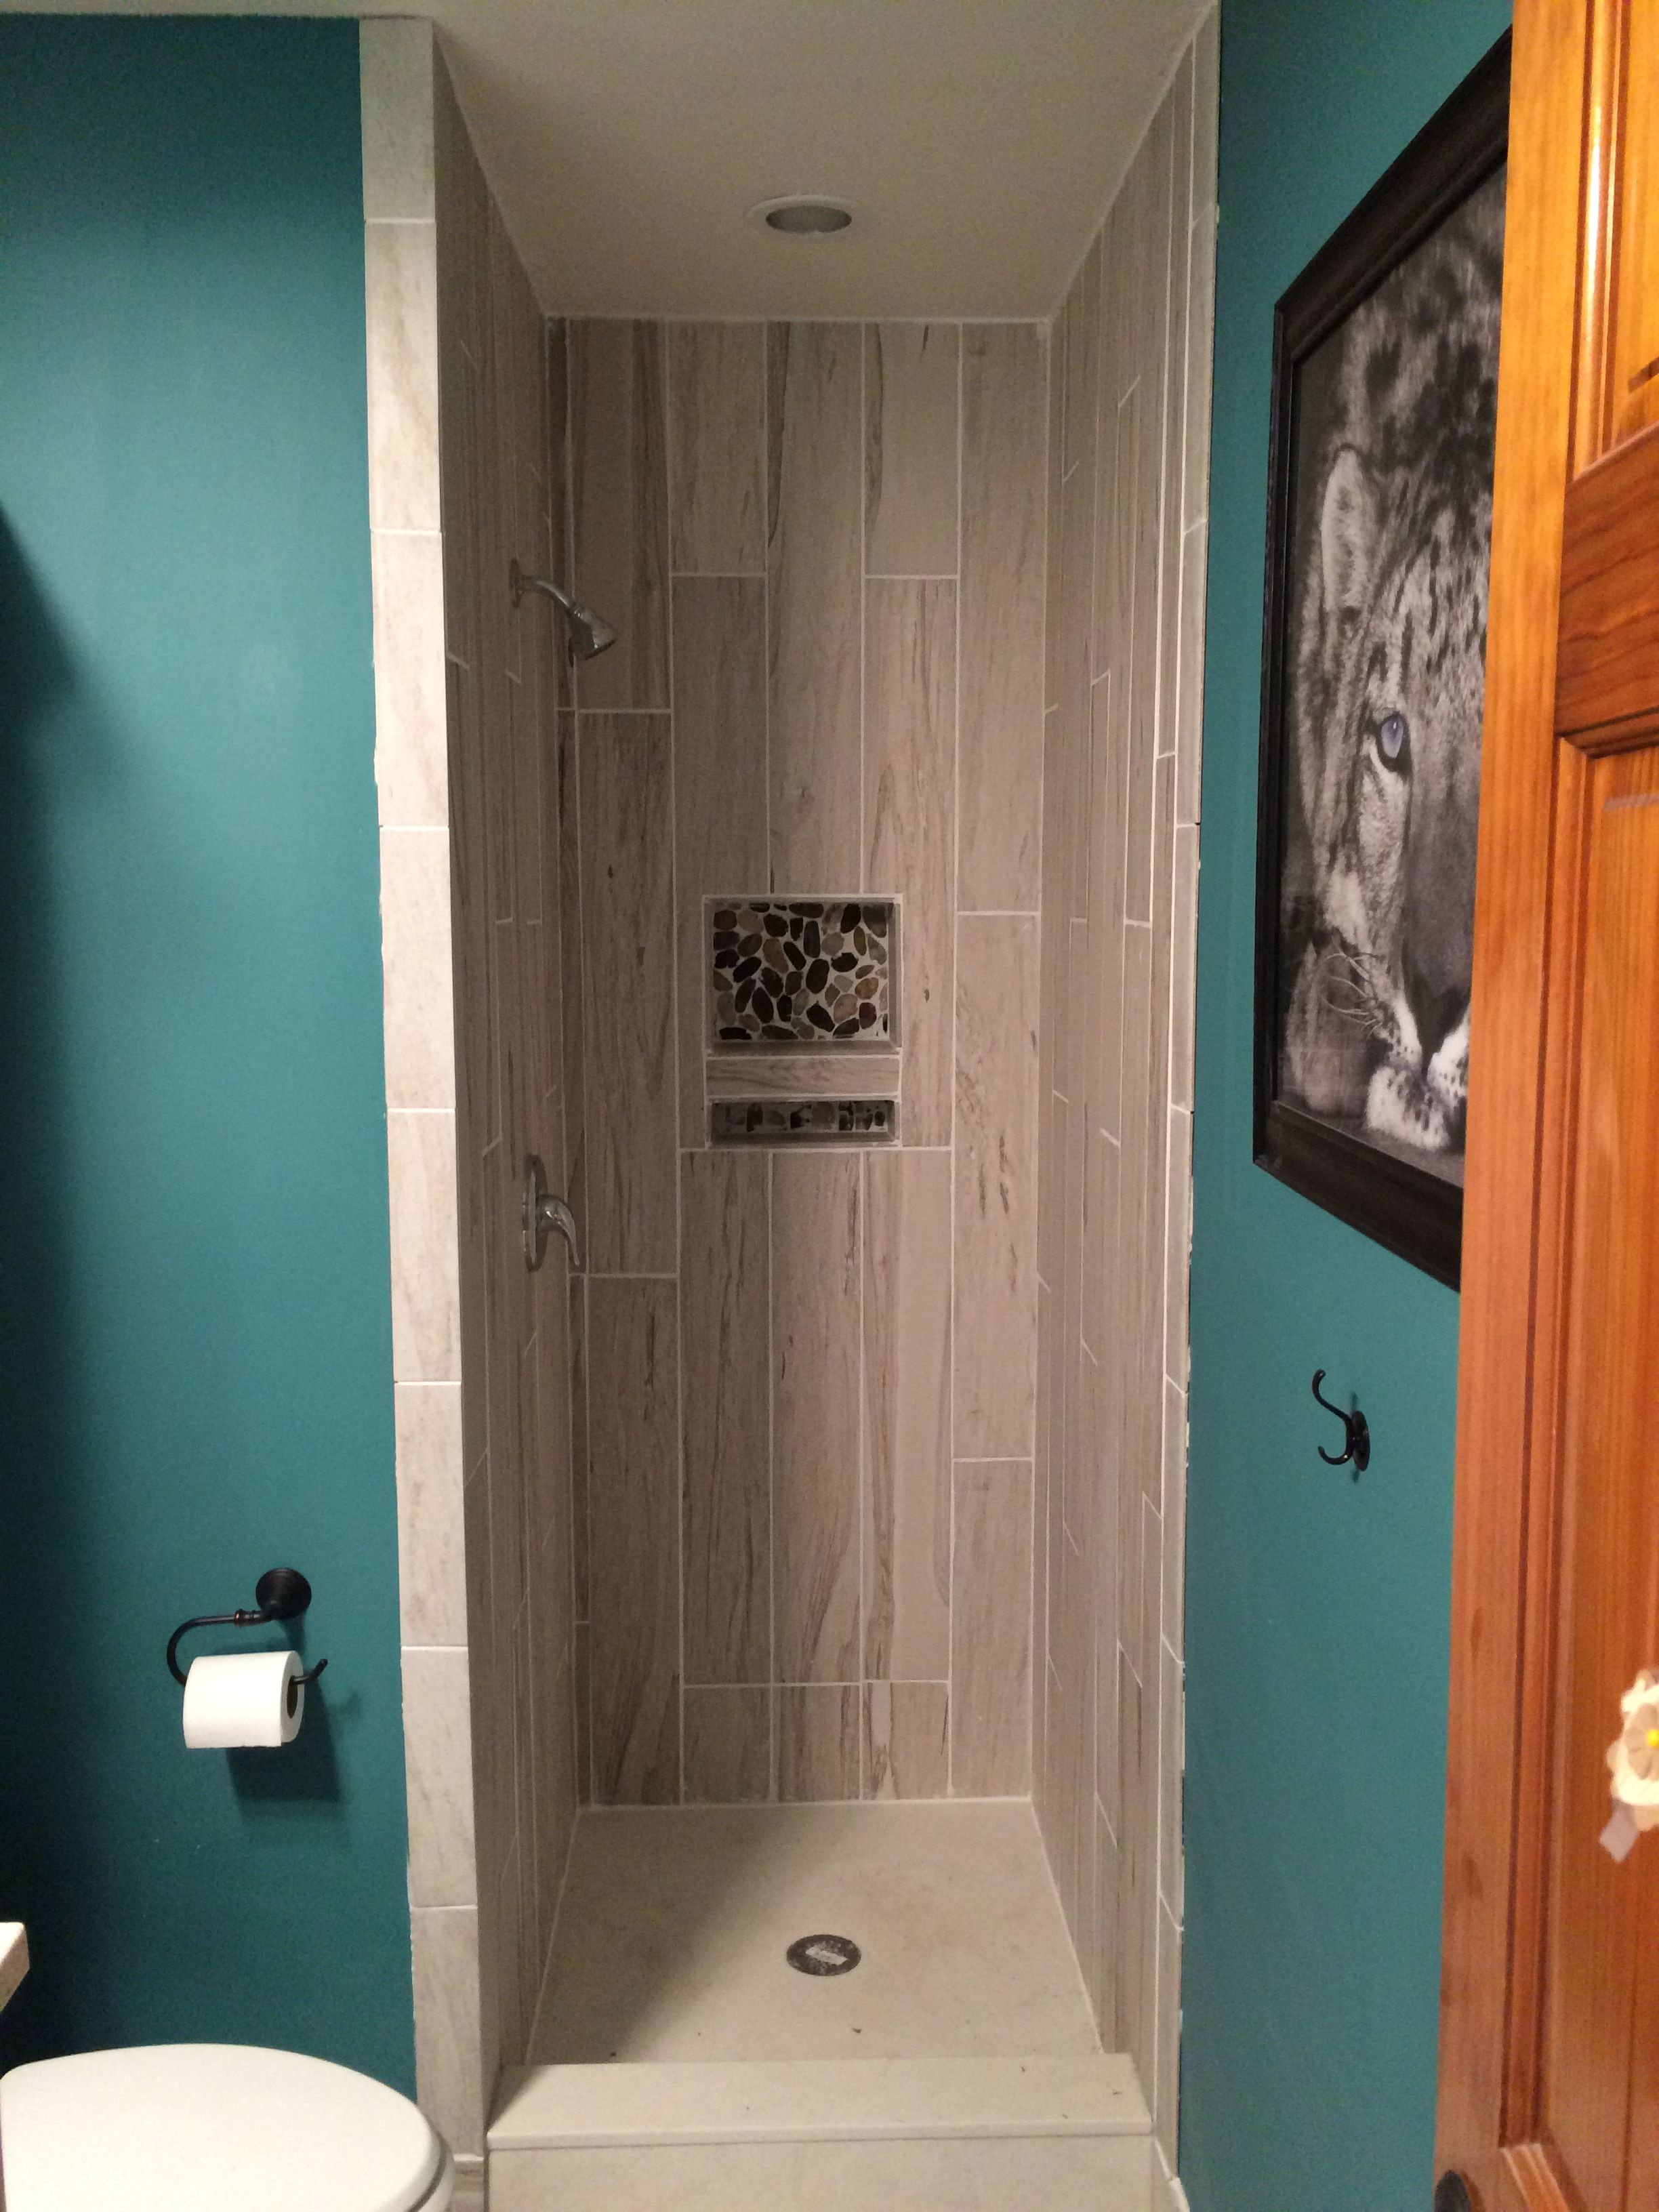 Half Bath Converted To Full Bath Using Foyer Coat Closet That Was Behind The Wall Bathrooms Remodel Simple Bathroom Remodel Budget Bathroom Remodel